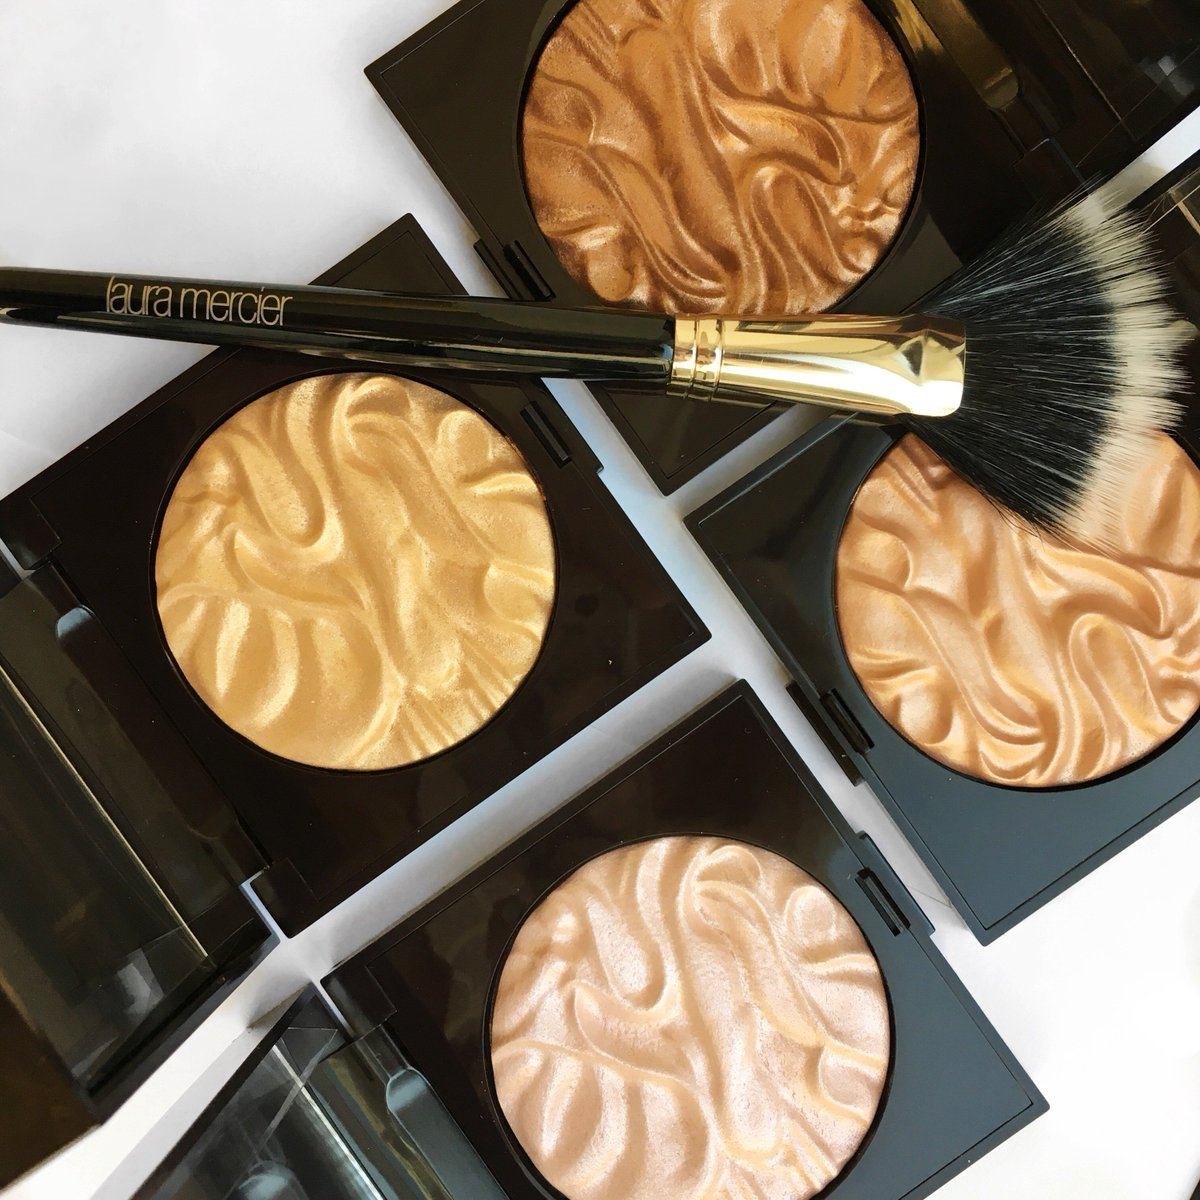 Officially launching today at @Sephora!! 3 new shades of Face Illuminator! https://t.co/pSVapzFCJ8 https://t.co/lxRPfWzMUE